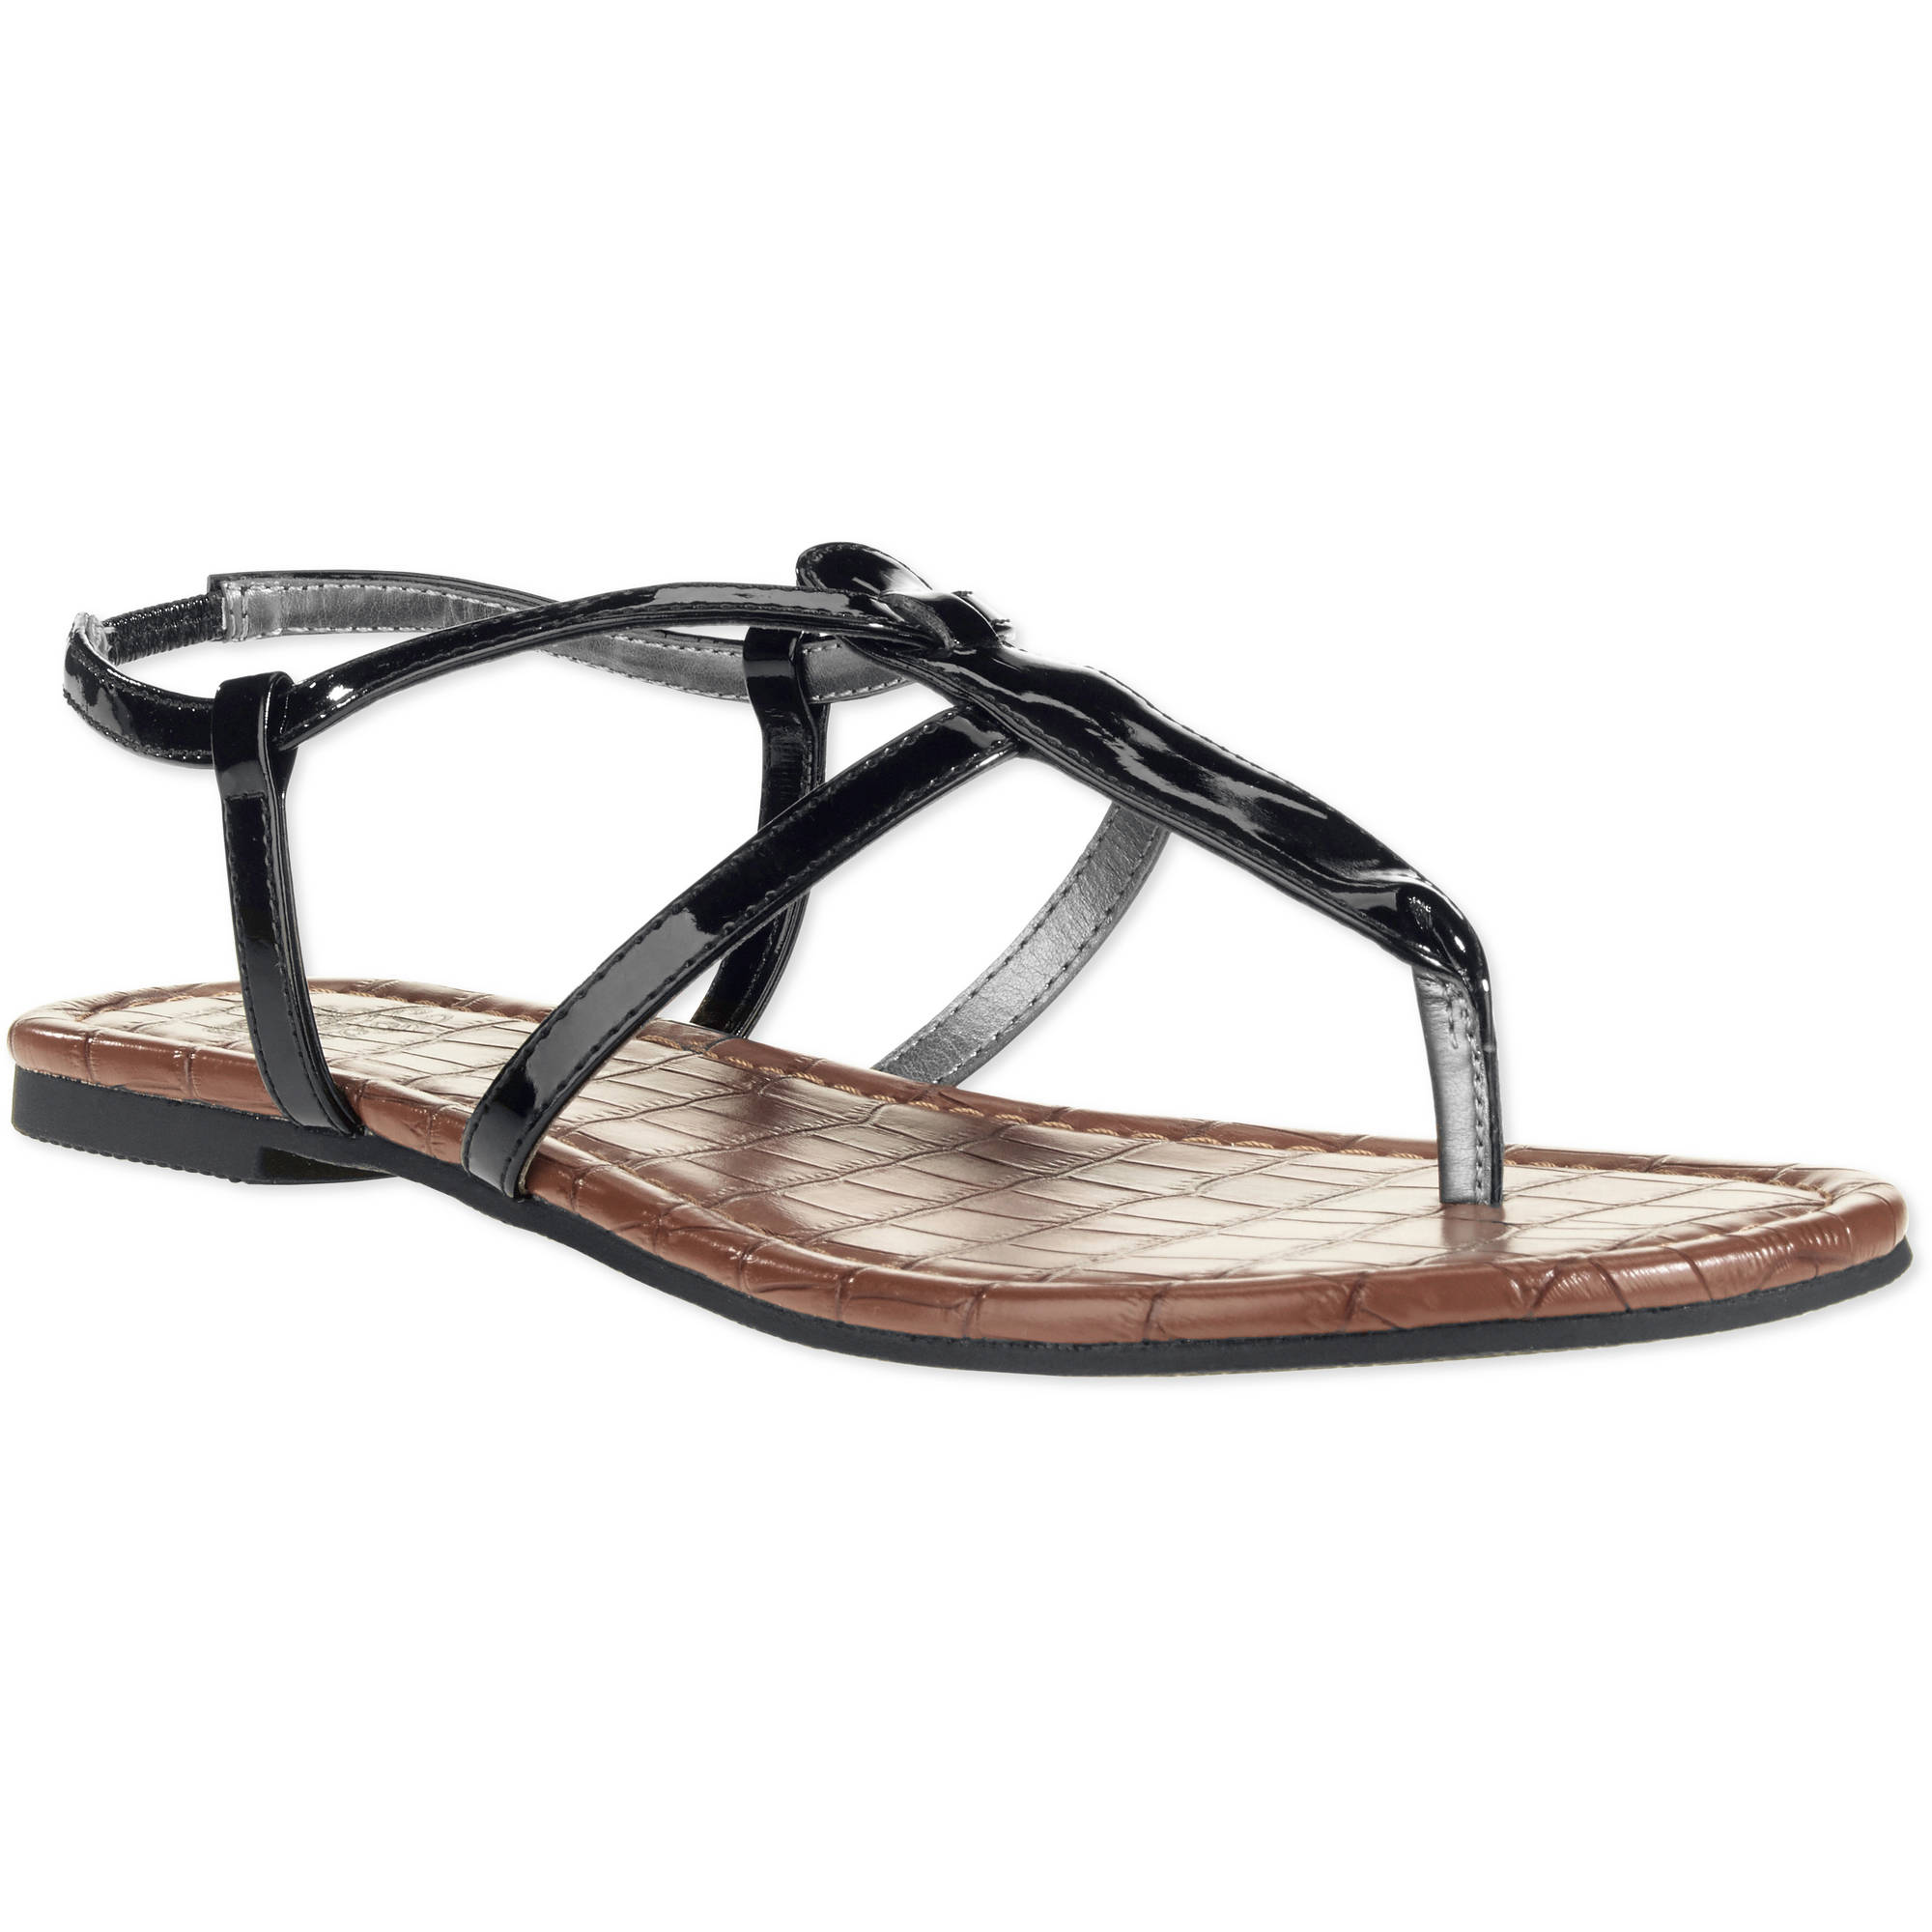 Faded glory Women's Shar Sandal